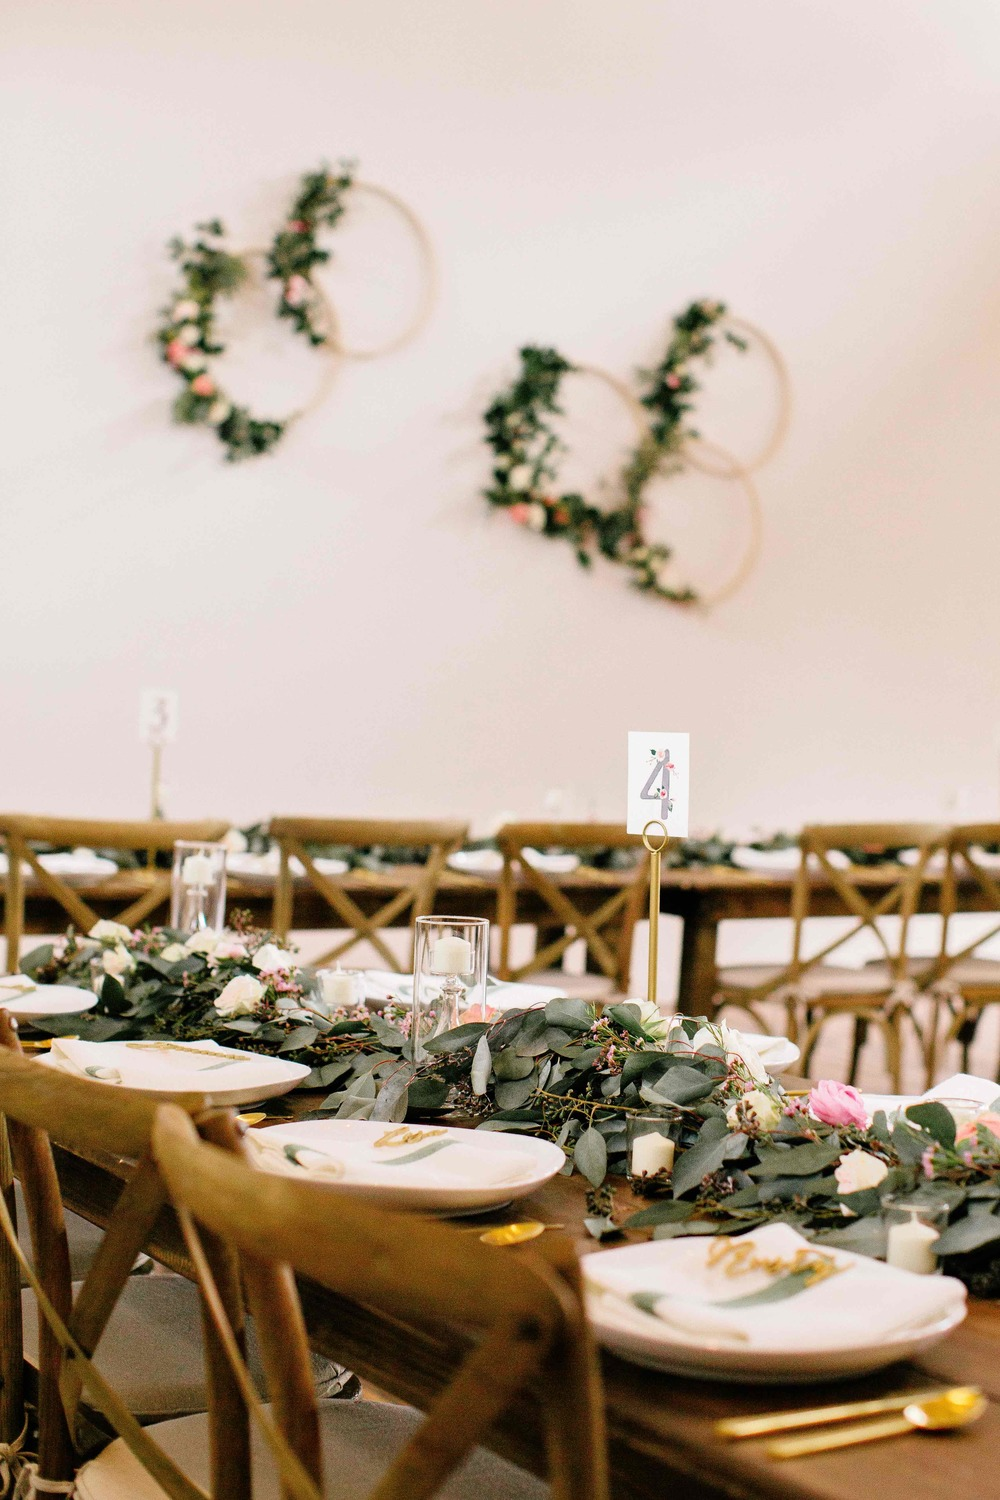 Organic garlands of greenery and flowers // floral table runners